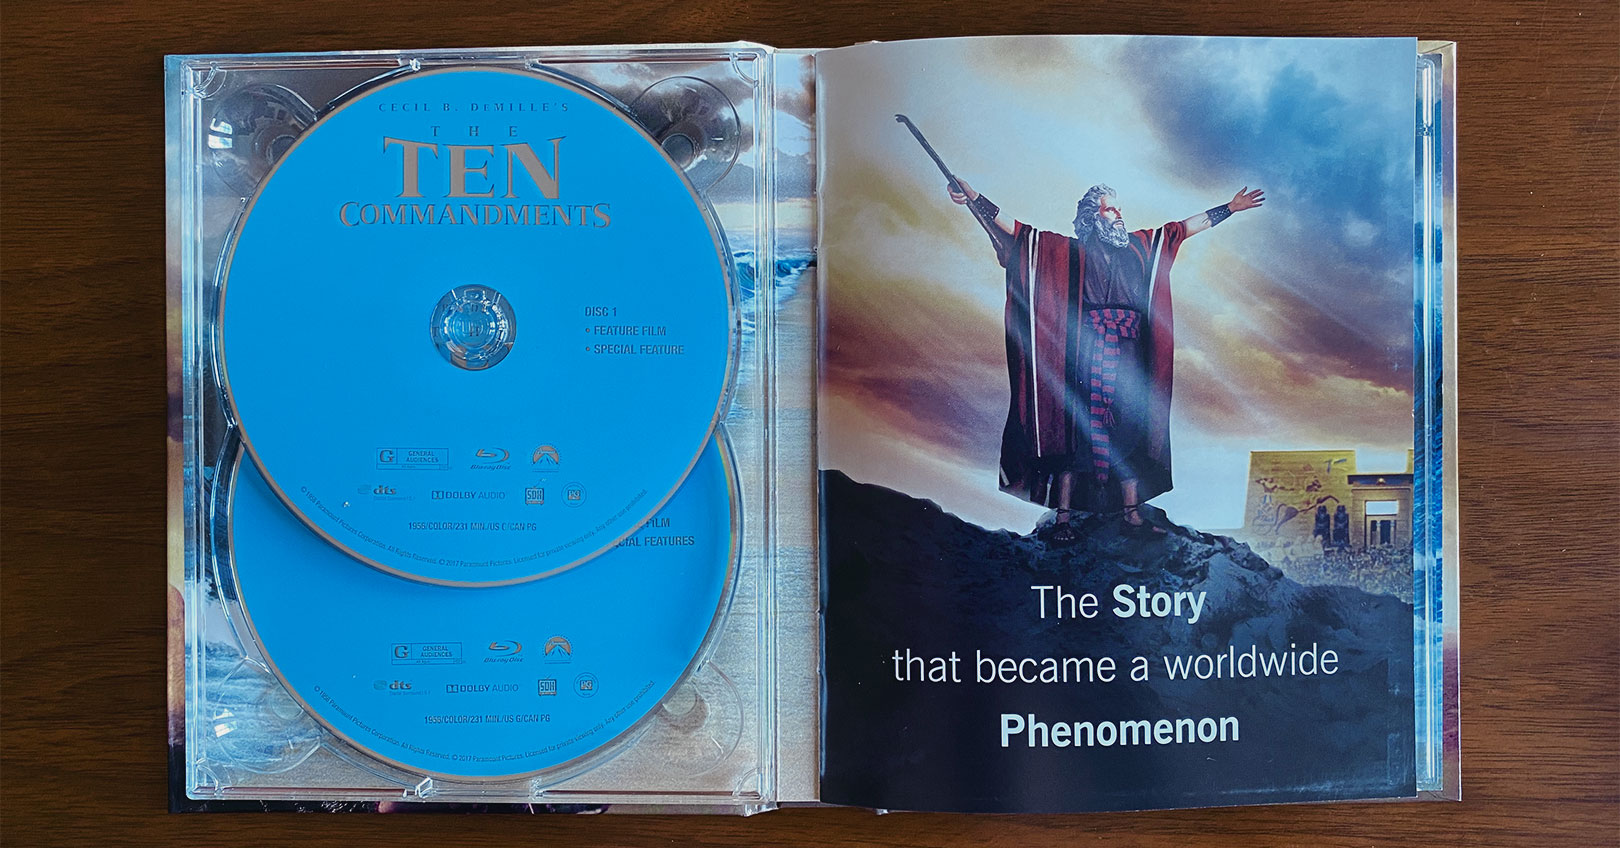 The Ten Commandments DigiBook